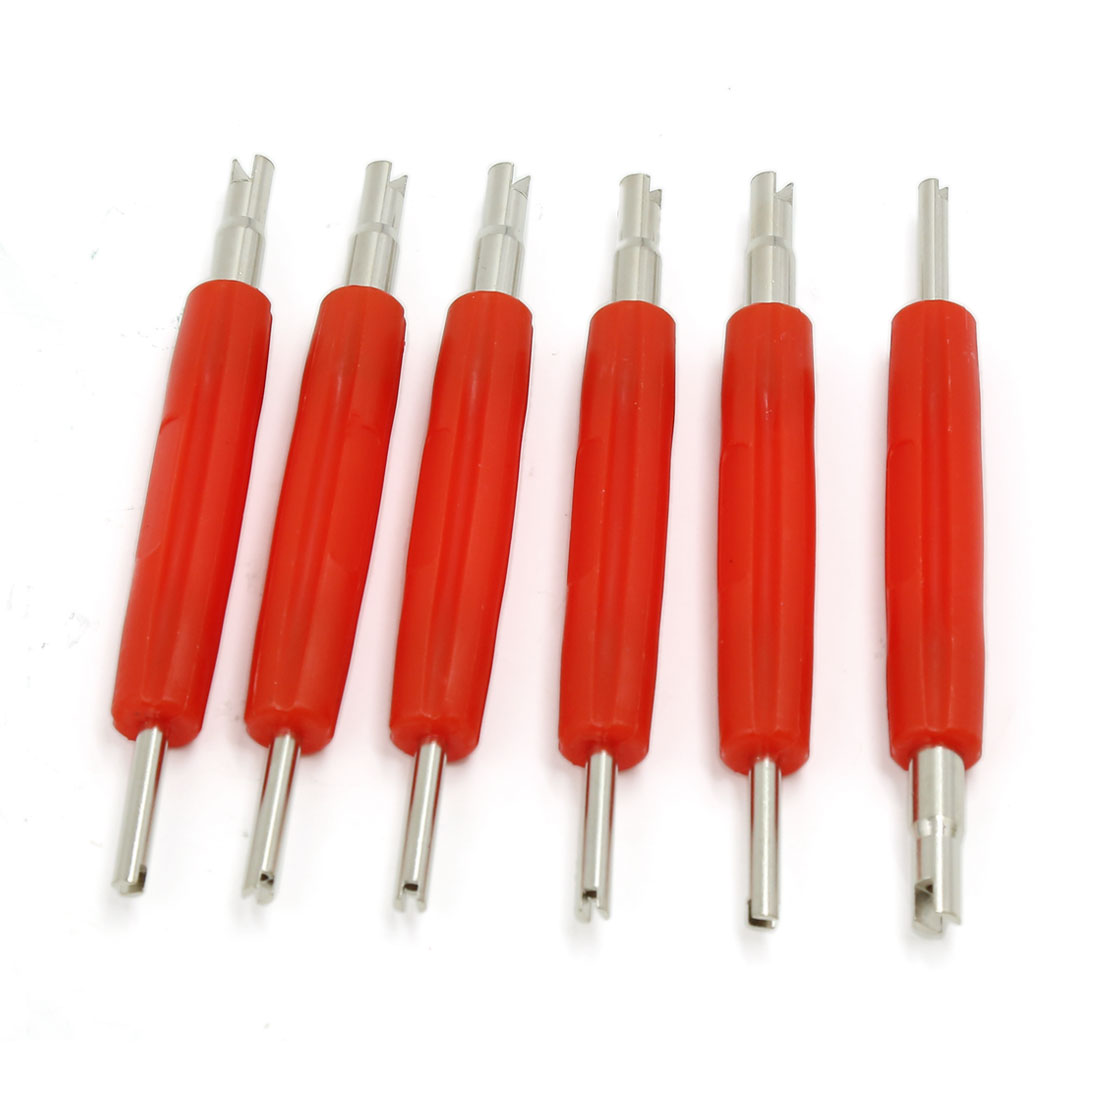 "Car Motorcycle Tyre Tire Repair Tool 2-Way Valve Core Remover 4.8"" Length 6pcs"